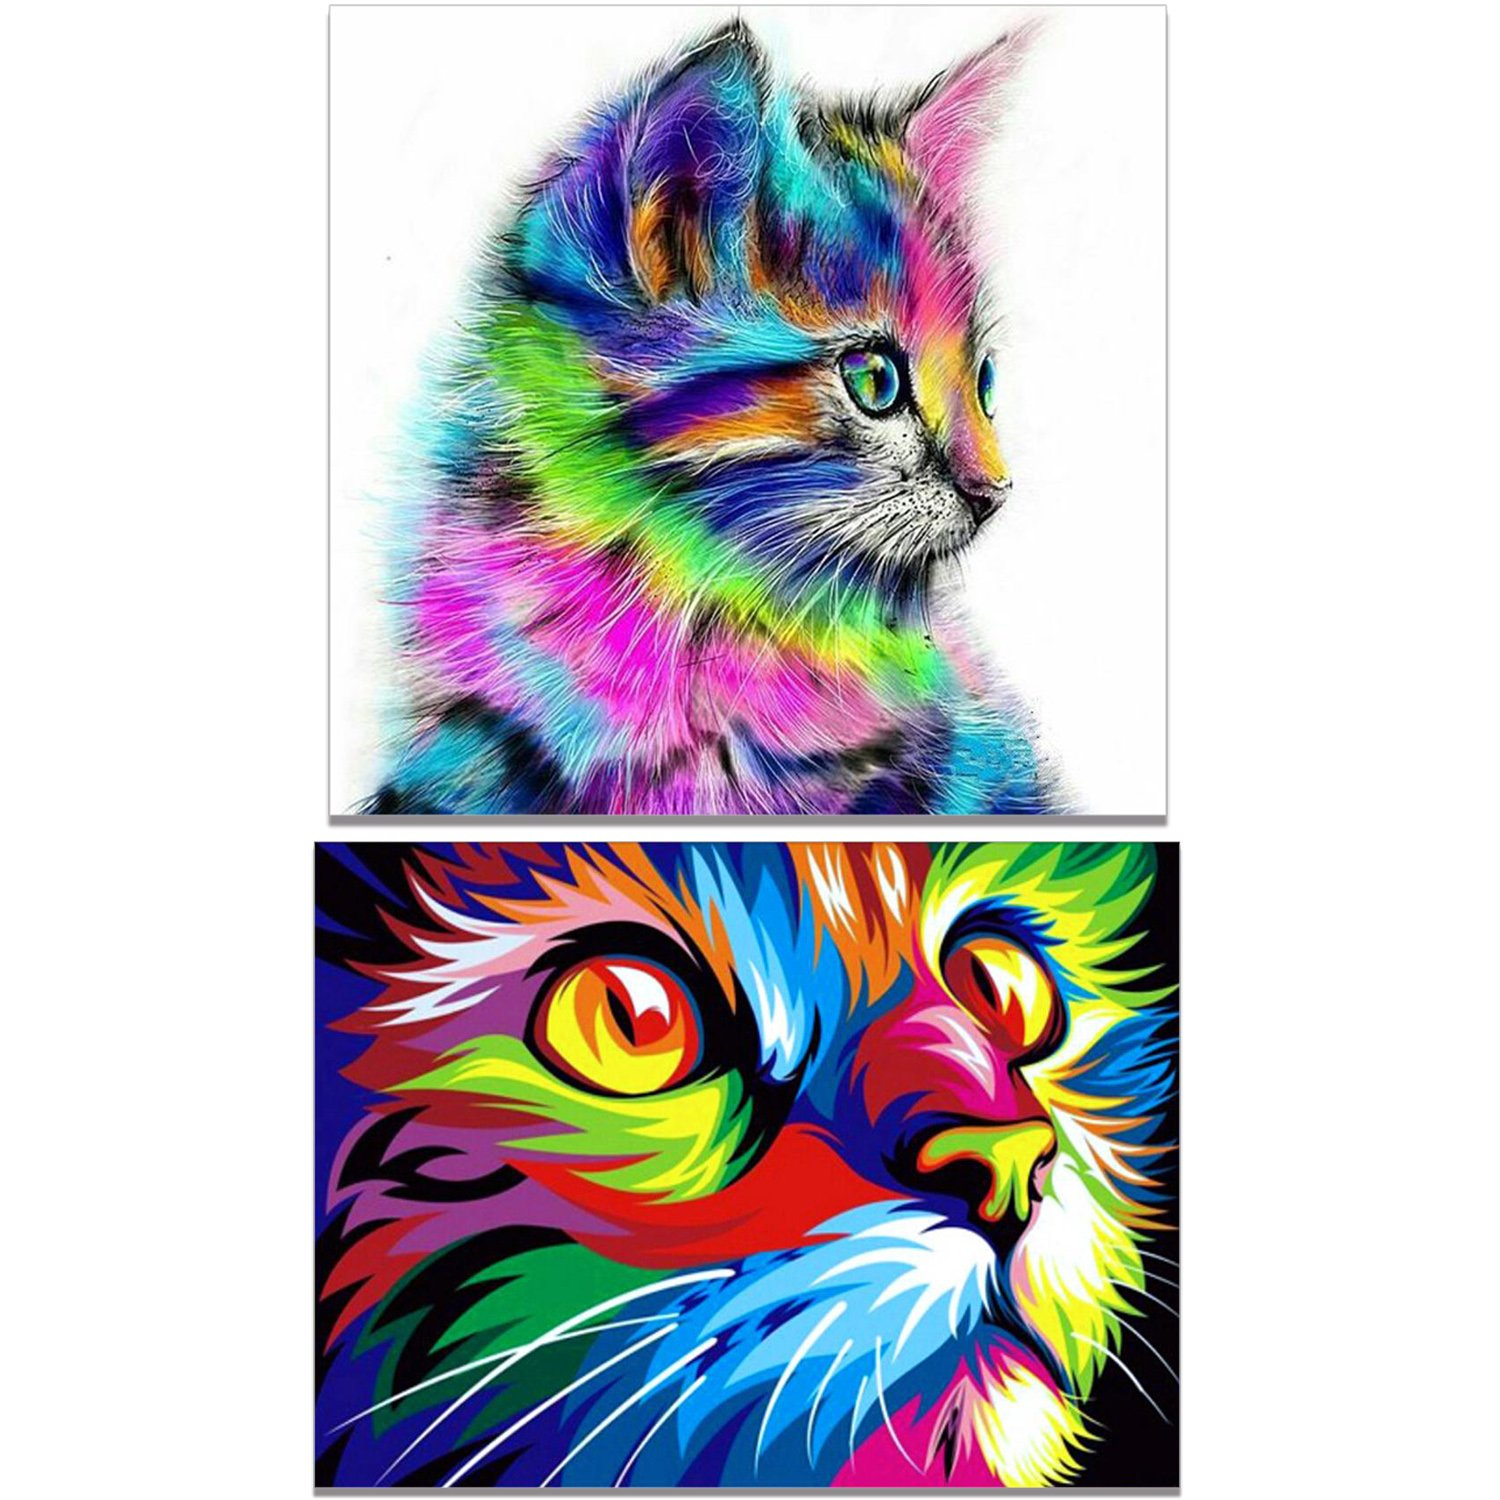 Hestya 2 Sets 5D DIY Diamond Painting Kit Full Drill Cute Cat Crystals Embroidery Tools for Home Decorations Craft